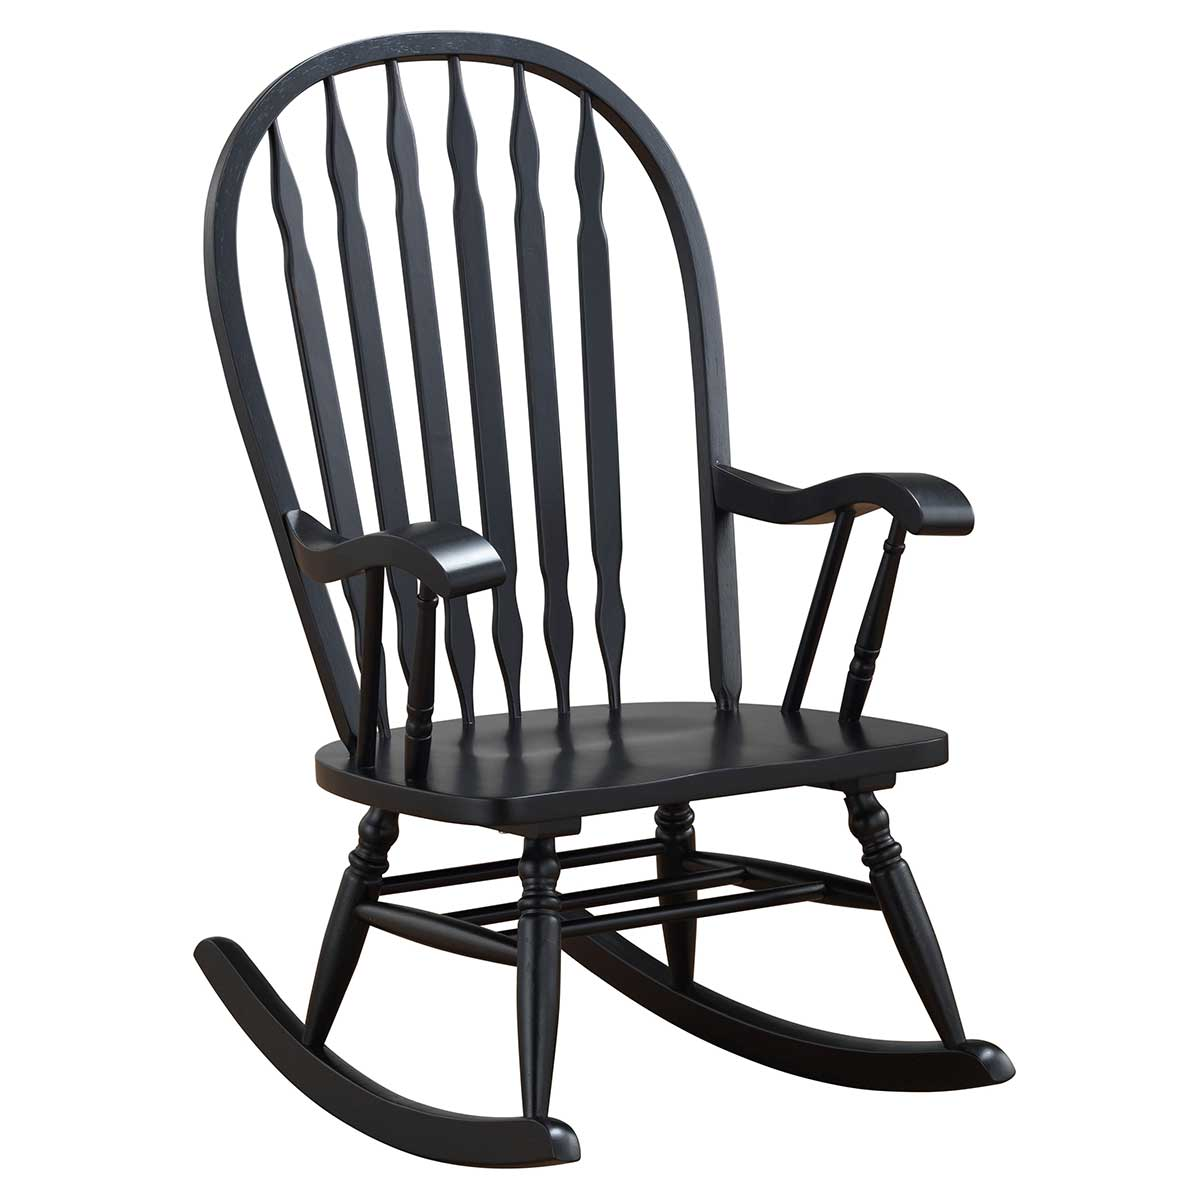 Superb Black Classic Americana Style Windsor Rocker Forskolin Free Trial Chair Design Images Forskolin Free Trialorg